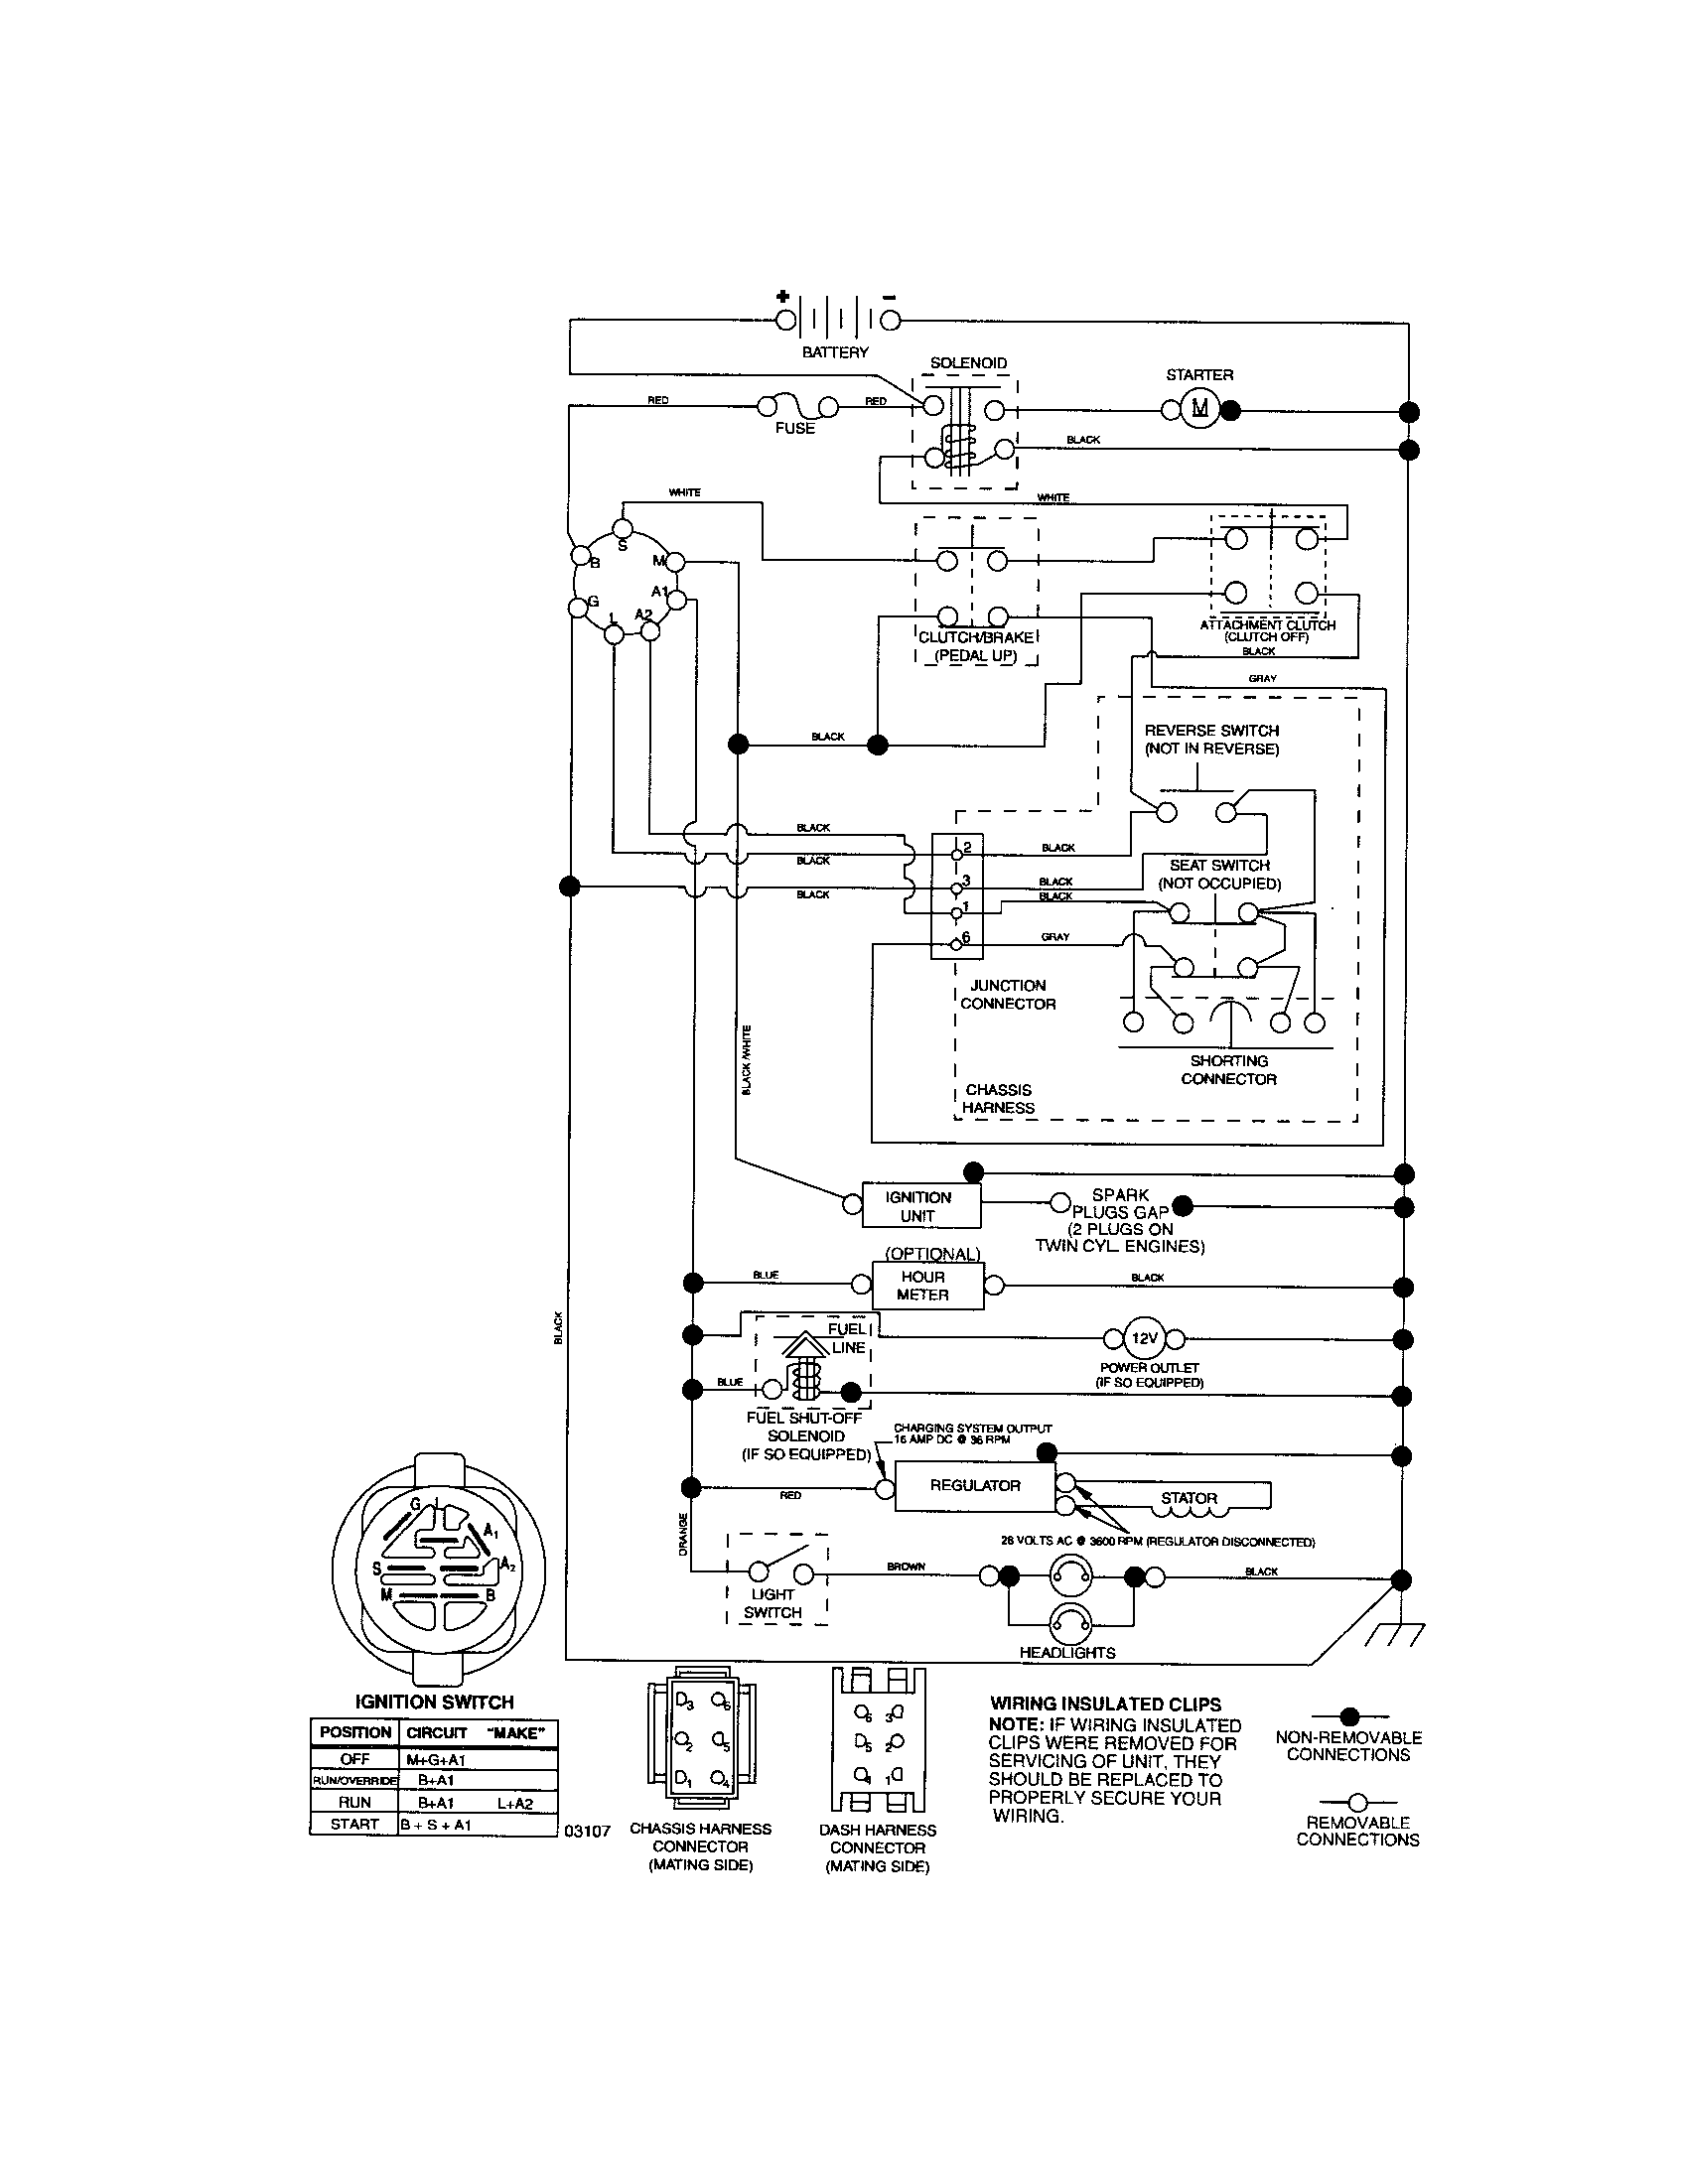 craftsman riding mower electrical diagram wiring diagram craftsman rh pinterest com craftsman lt1000 wiring diagram Lawn Mower Key Switch Wiring Diagram